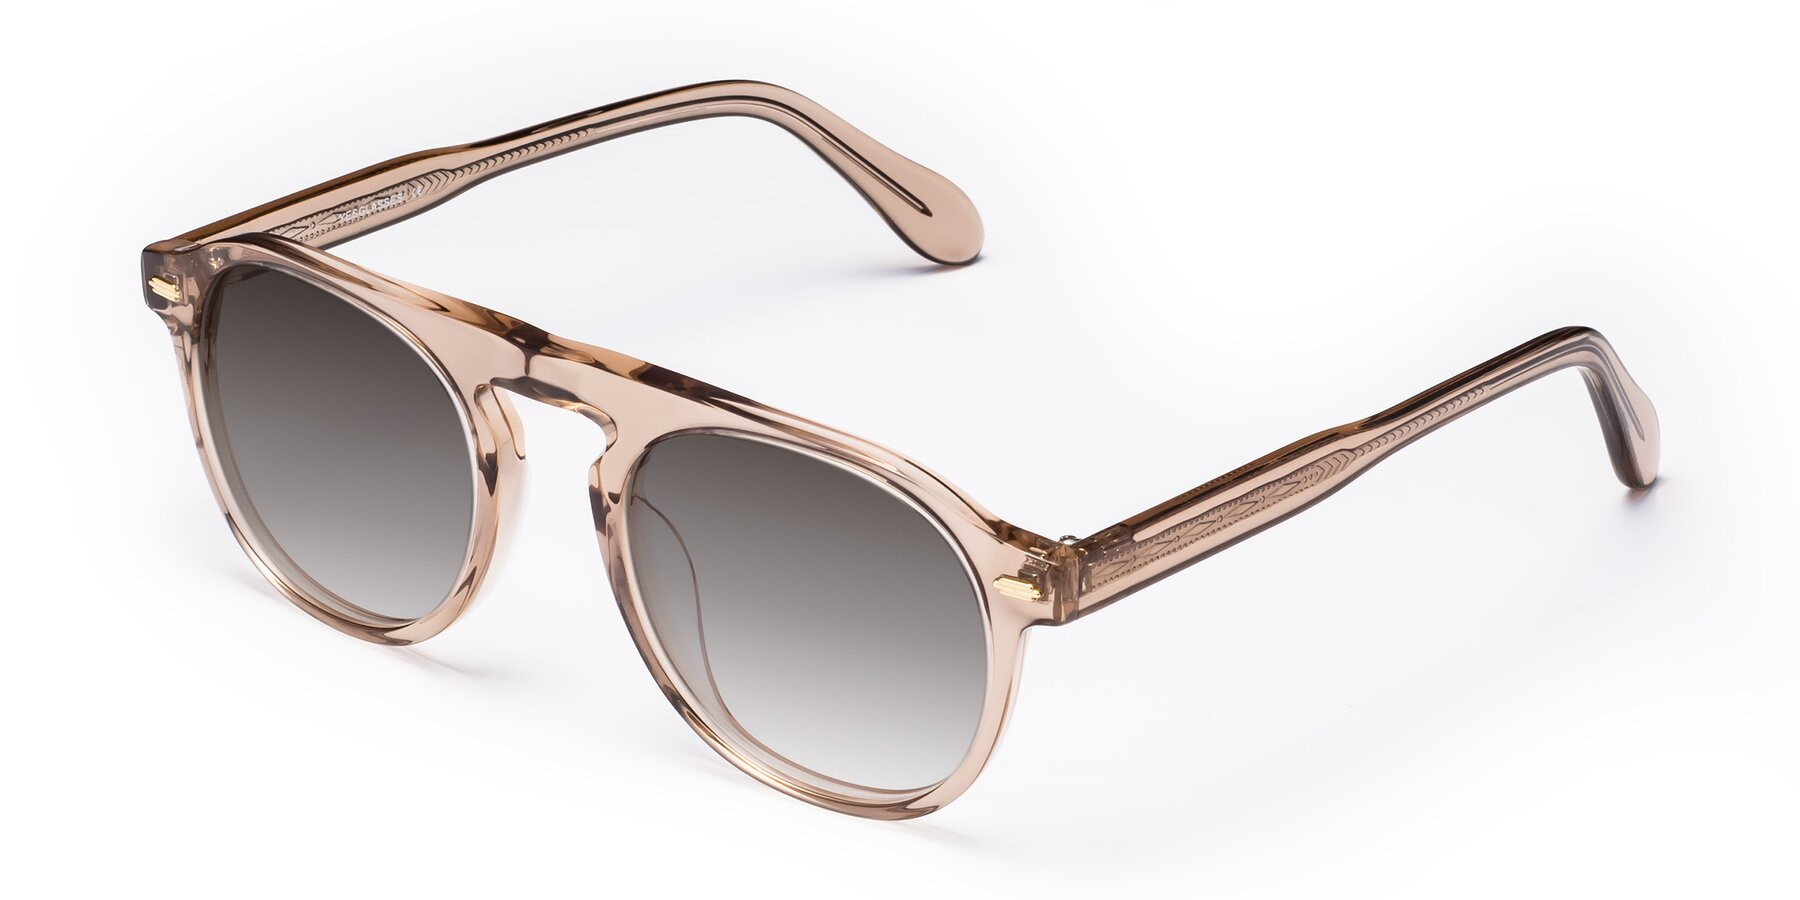 Angle of Mufasa in light Brown with Gray Gradient Lenses